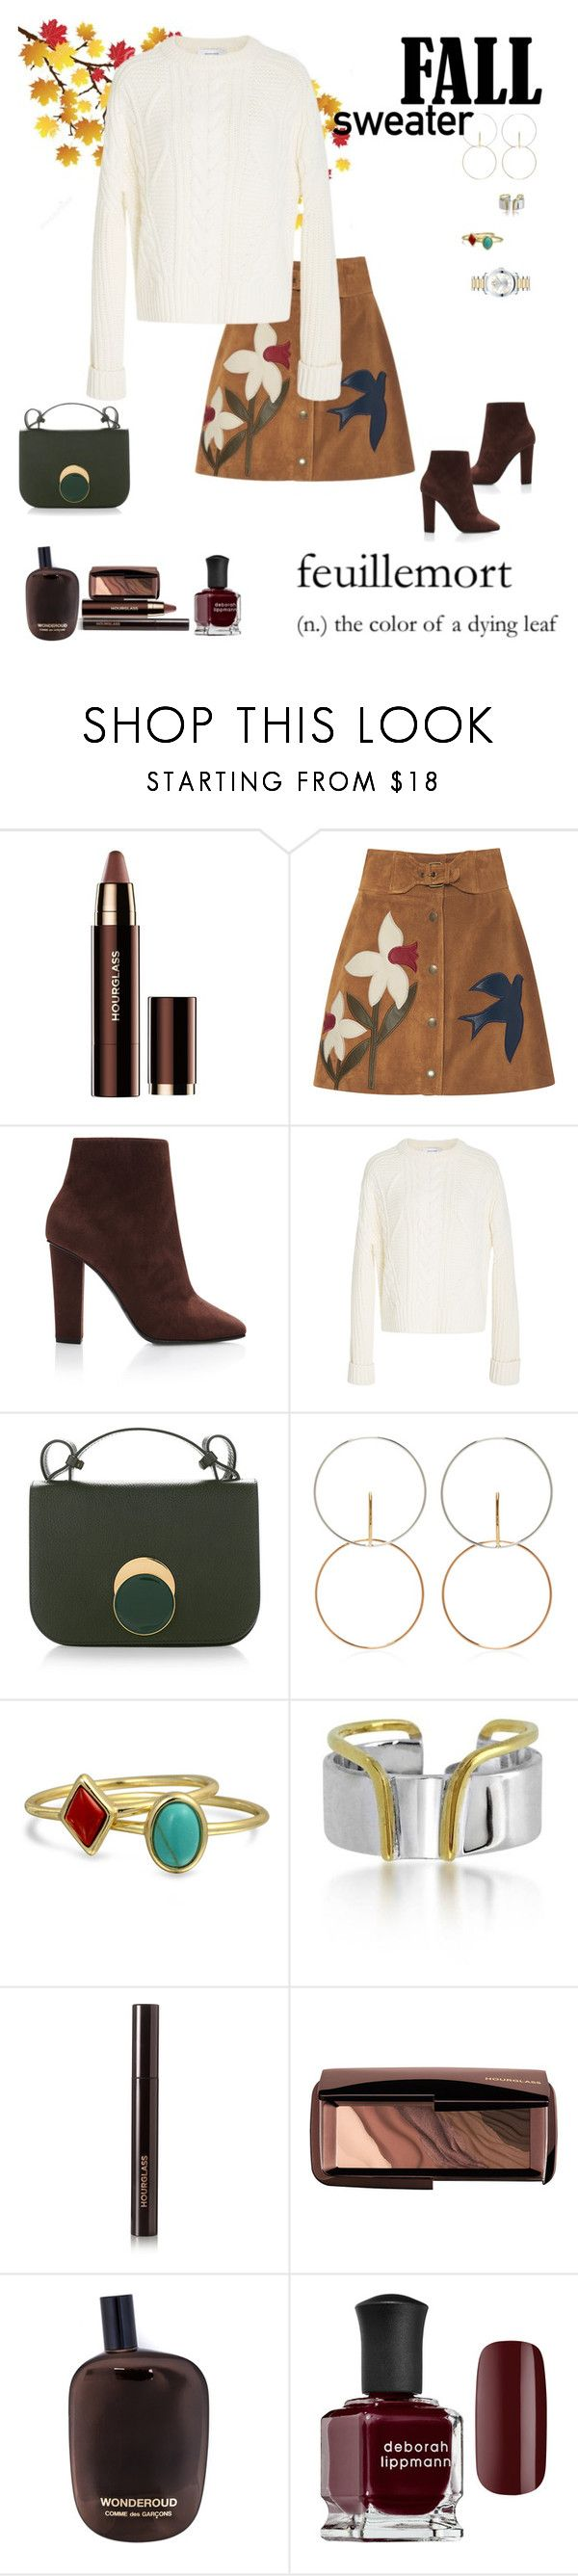 """Fall Sweaters!!🍁"" by sereneowl ❤ liked on Polyvore featuring Hourglass Cosmetics, RED Valentino, Giuseppe Zanotti, Carven, Marni, Charlotte Chesnais, Bling Jewelry, Maya Magal, Comme des Garçons and Deborah Lippmann"